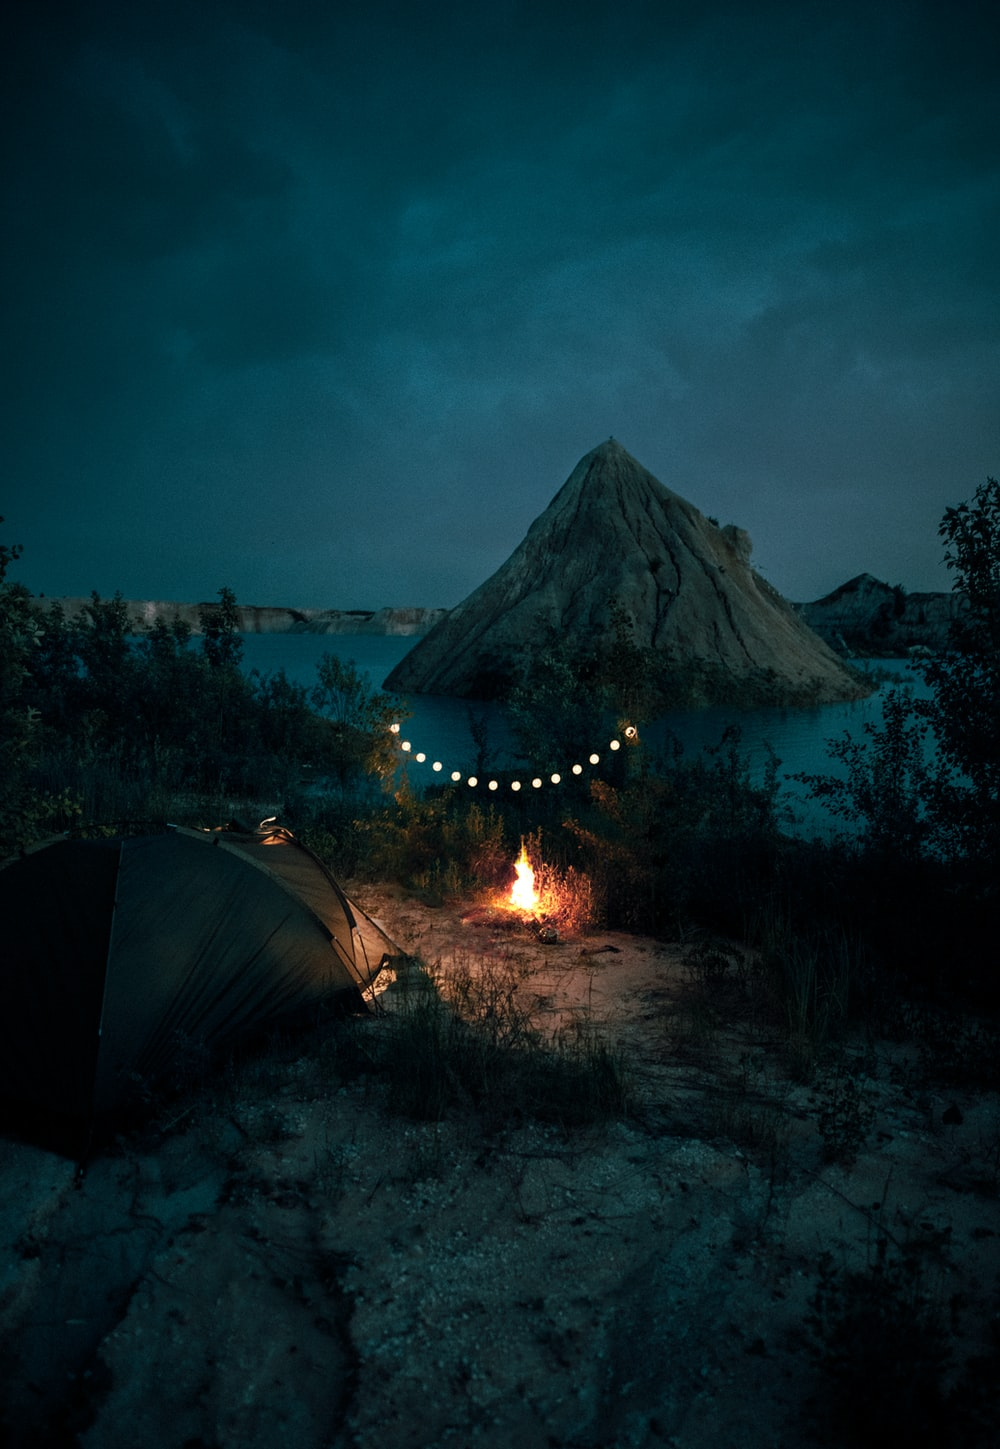 bonfire near tent and mountain during night time